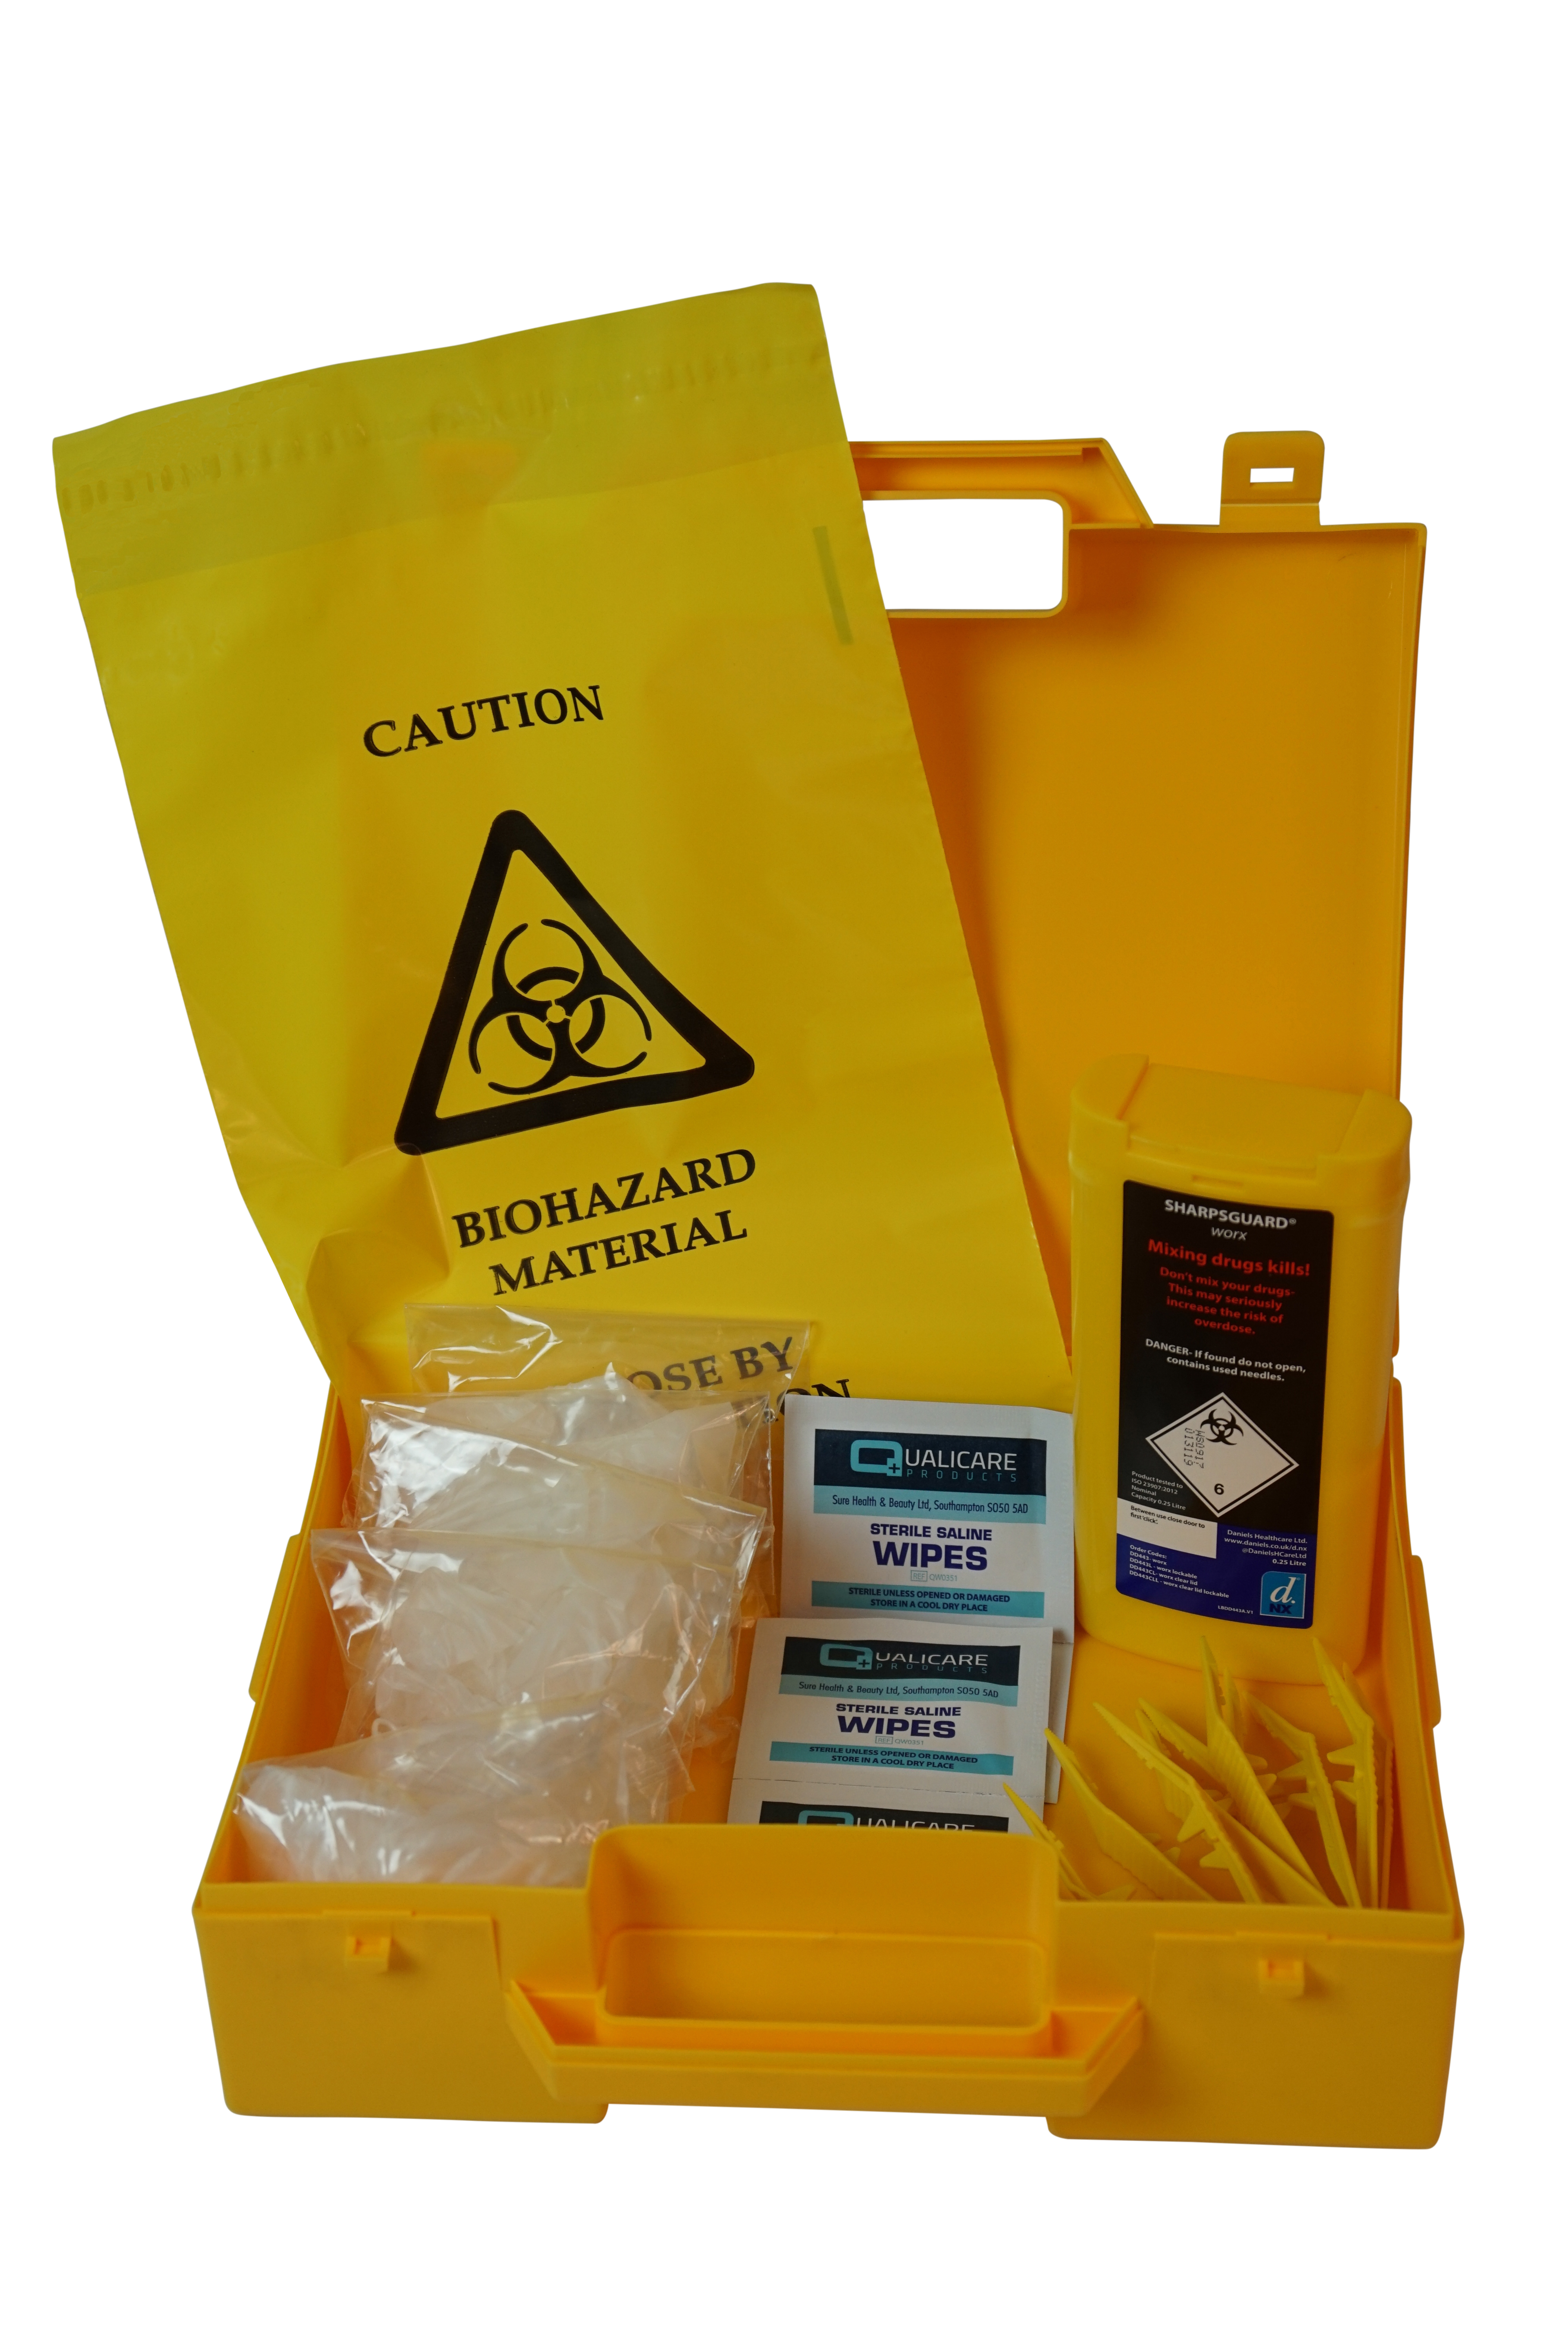 Sharps Disposal Kit comprising of 0.25 litre bin, 5 x wipes, disposal bags, gloves and tweezers supplied in yellow carrying case